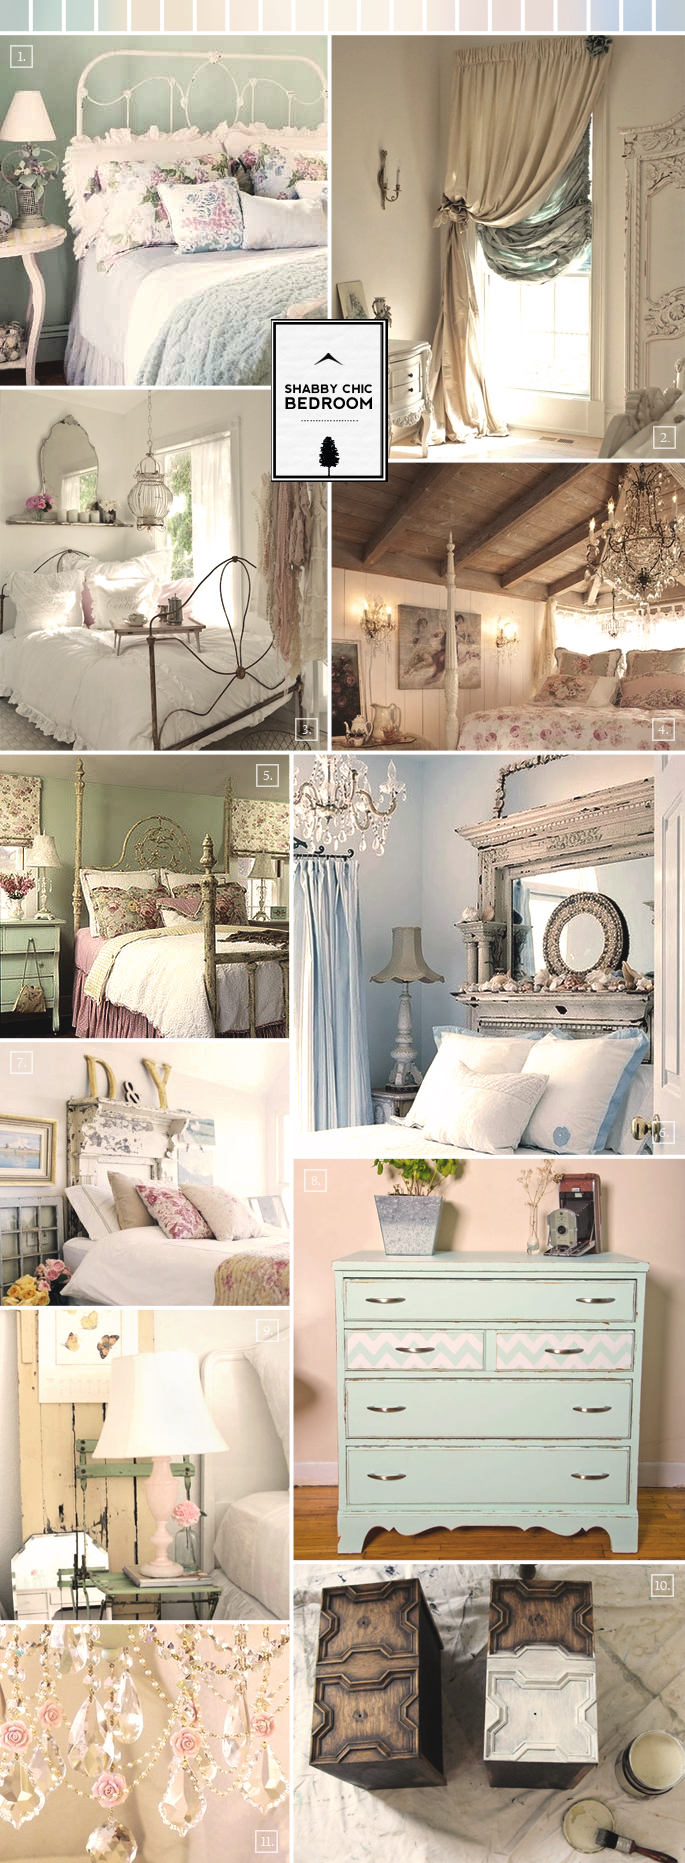 shabby chic bedroom ideas and decor inspiration home